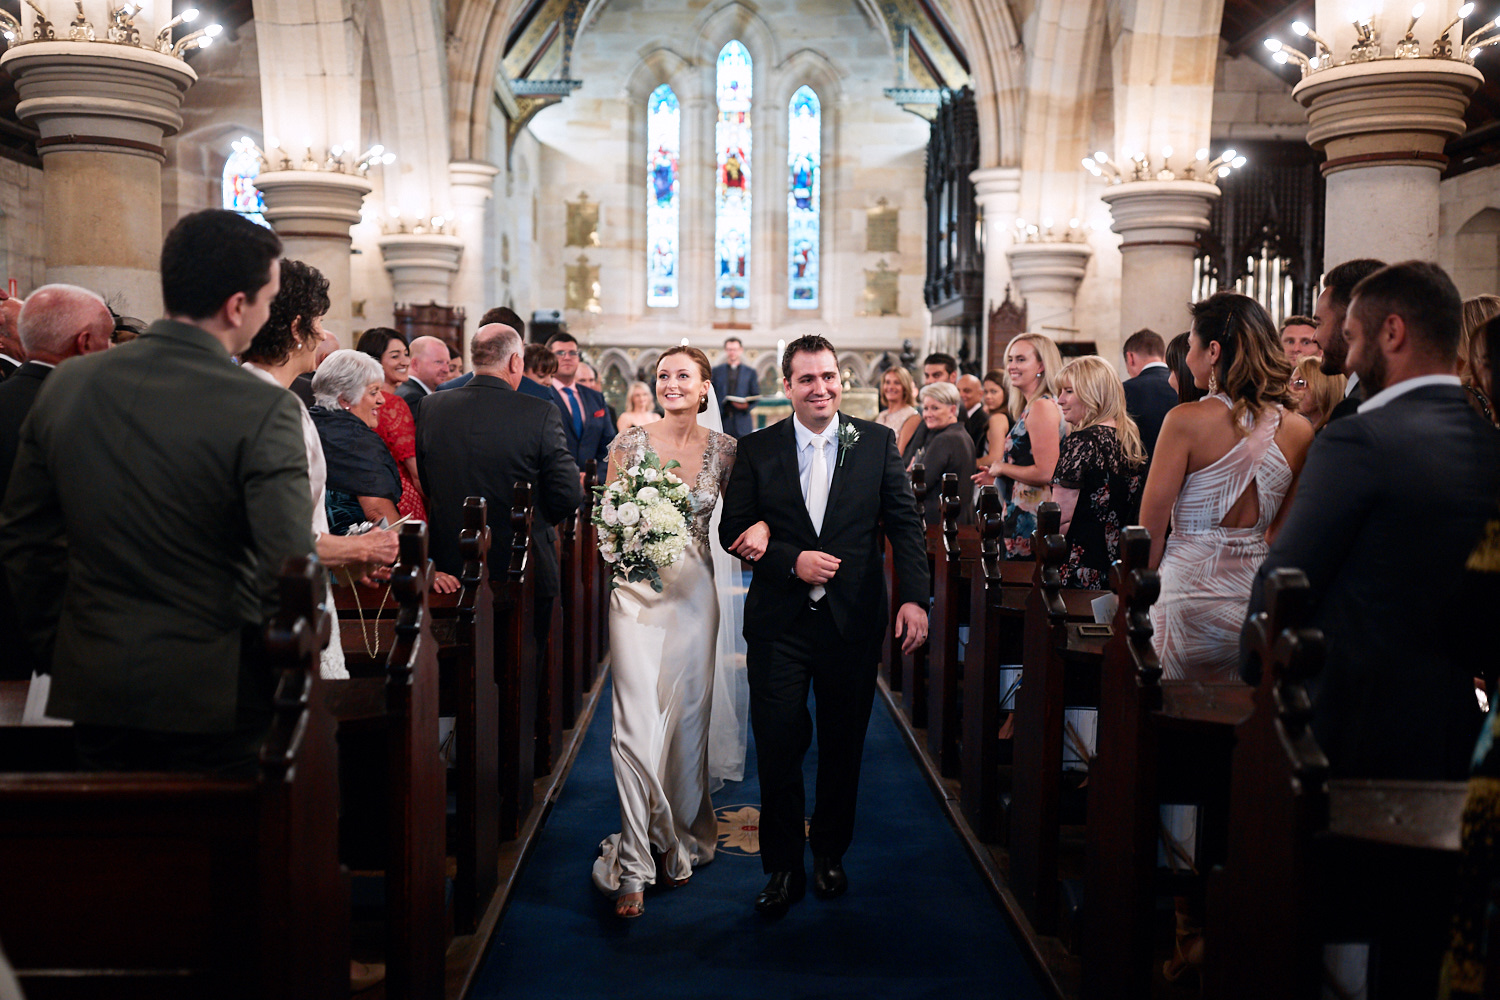 Newlyweds walking down aisle arm in arm with guests watching at St Marks Anglican Church, Darling Point